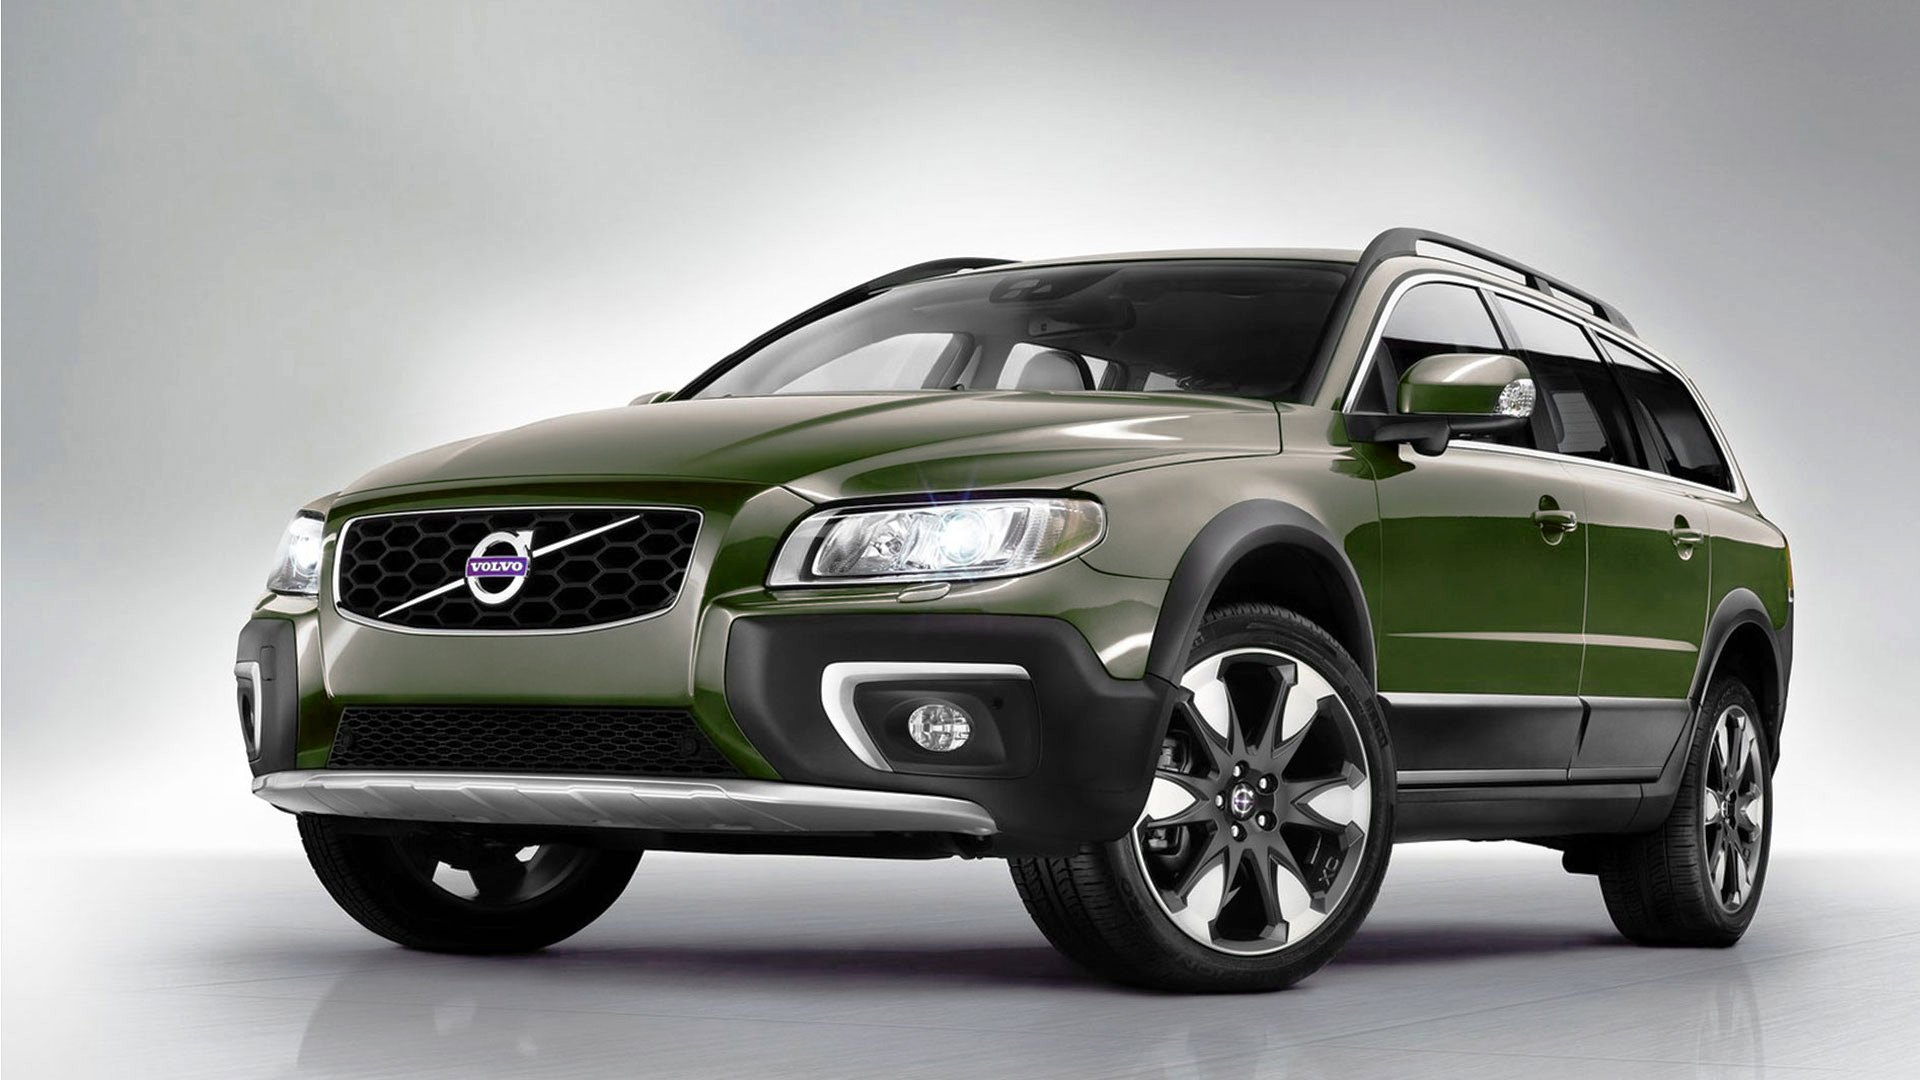 2015 volvo xc70 information and photos zombiedrive. Black Bedroom Furniture Sets. Home Design Ideas